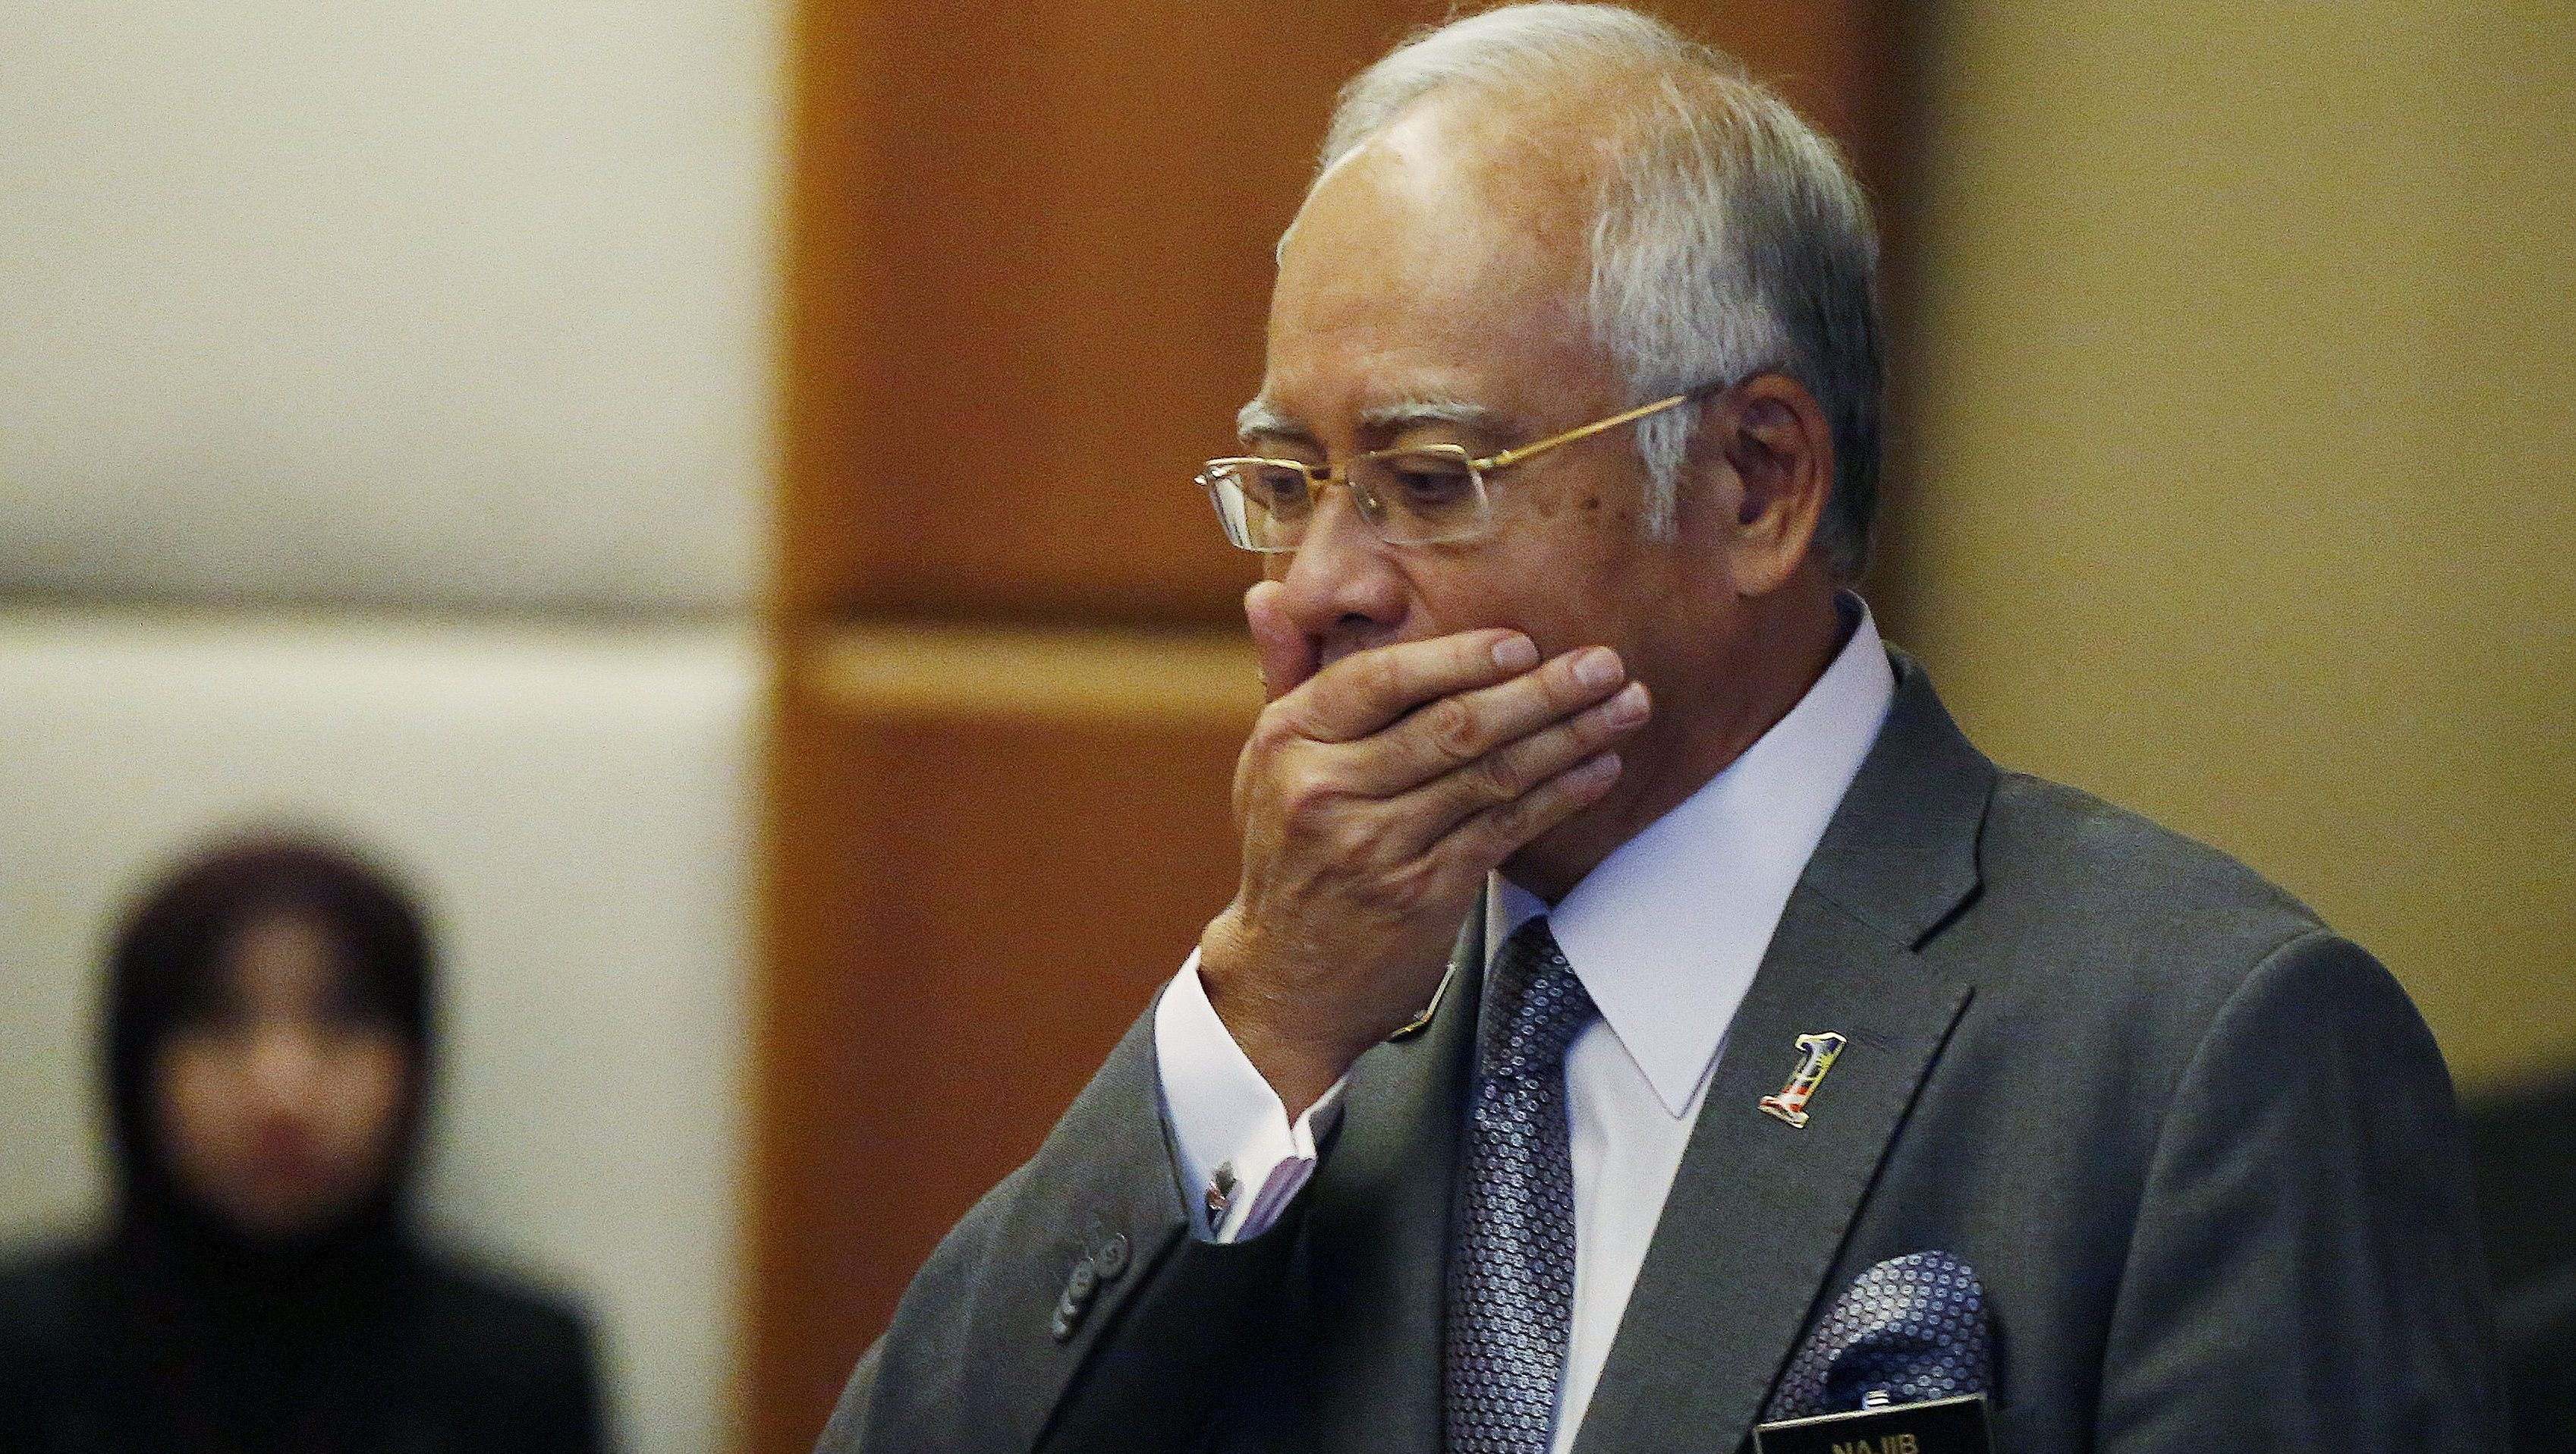 Malaysia's Prime Minister Najib Razak arrives at a presentation for government interns at the Prime Minster's office in Putrajaya, Malaysia, July 8, 2015. Malaysian police raided the office of troubled state investment fund 1MDB on Wednesday, following a report that claimed investigators looking into the firm found nearly $700 million had been transferred to Prime Minister Najib Razak's bank account. Najib has denied taking any money from 1MDB or any other entity for personal gain, and is considering legal action. REUTERS/Olivia Harris TPX IMAGES OF THE DAY - GF10000152317